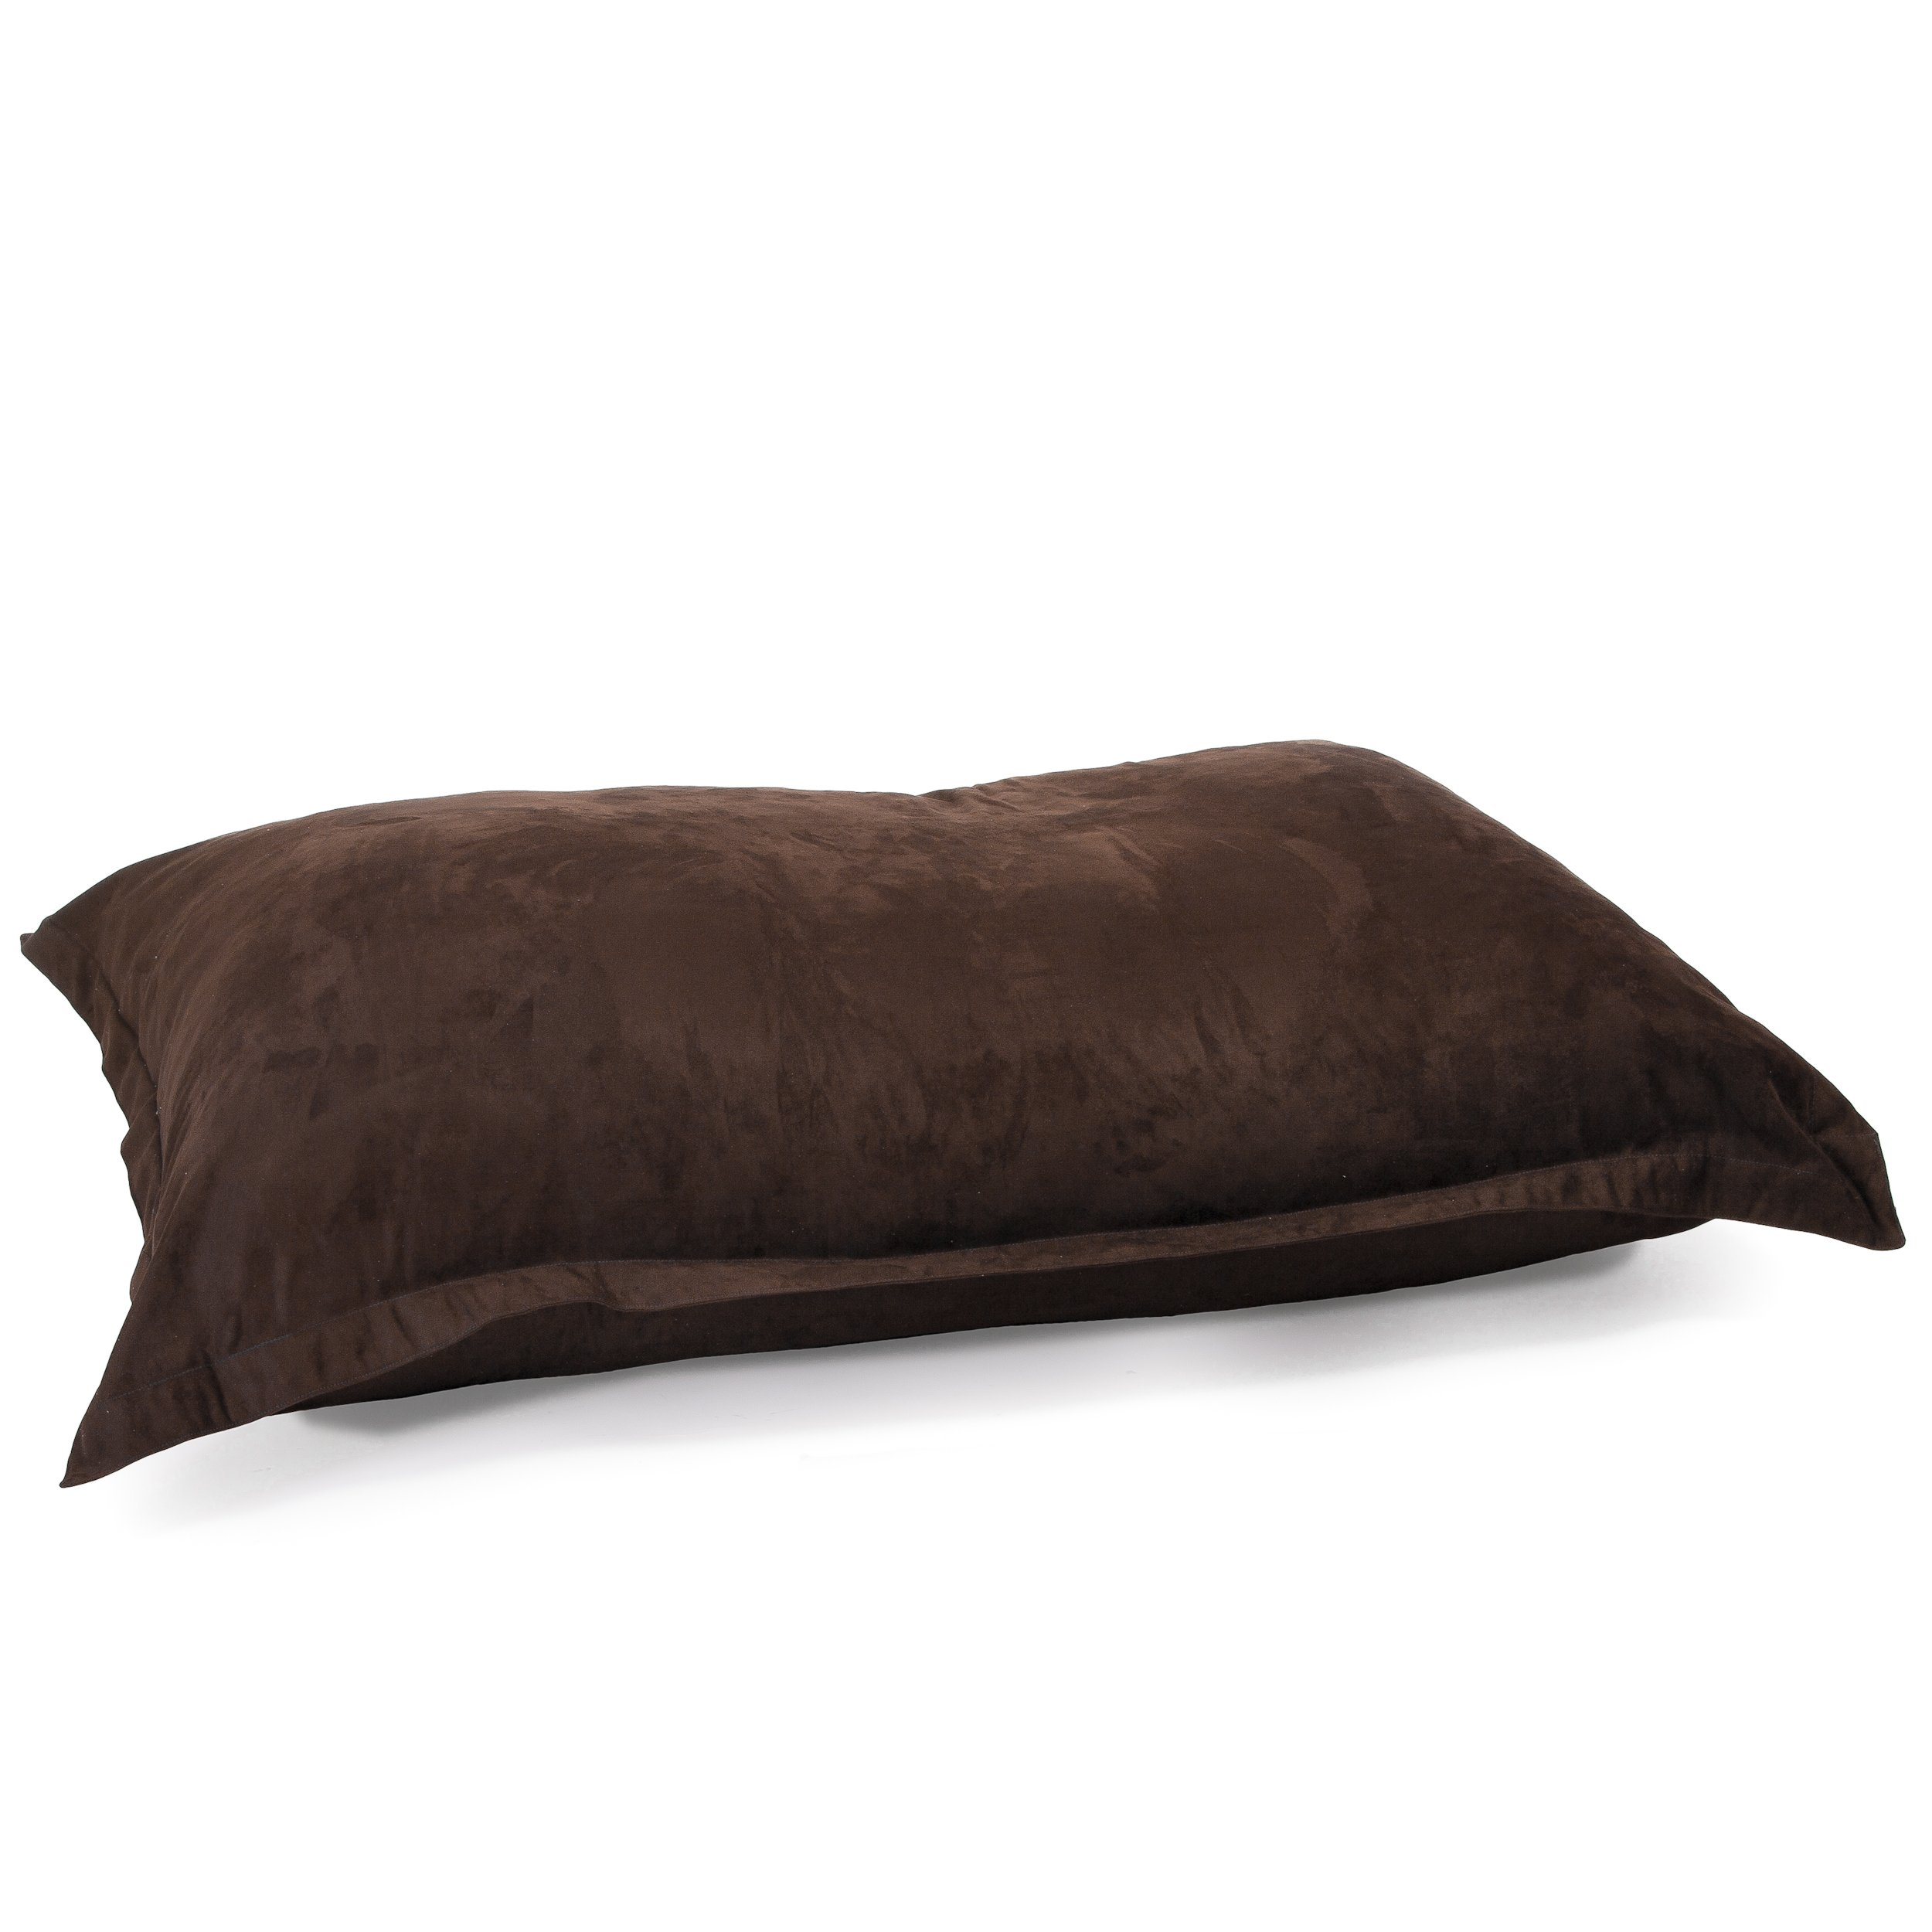 Best Selling Charter Faux Suede Lounge Pillow Bean Bag Chair, 5-Feet, Brown